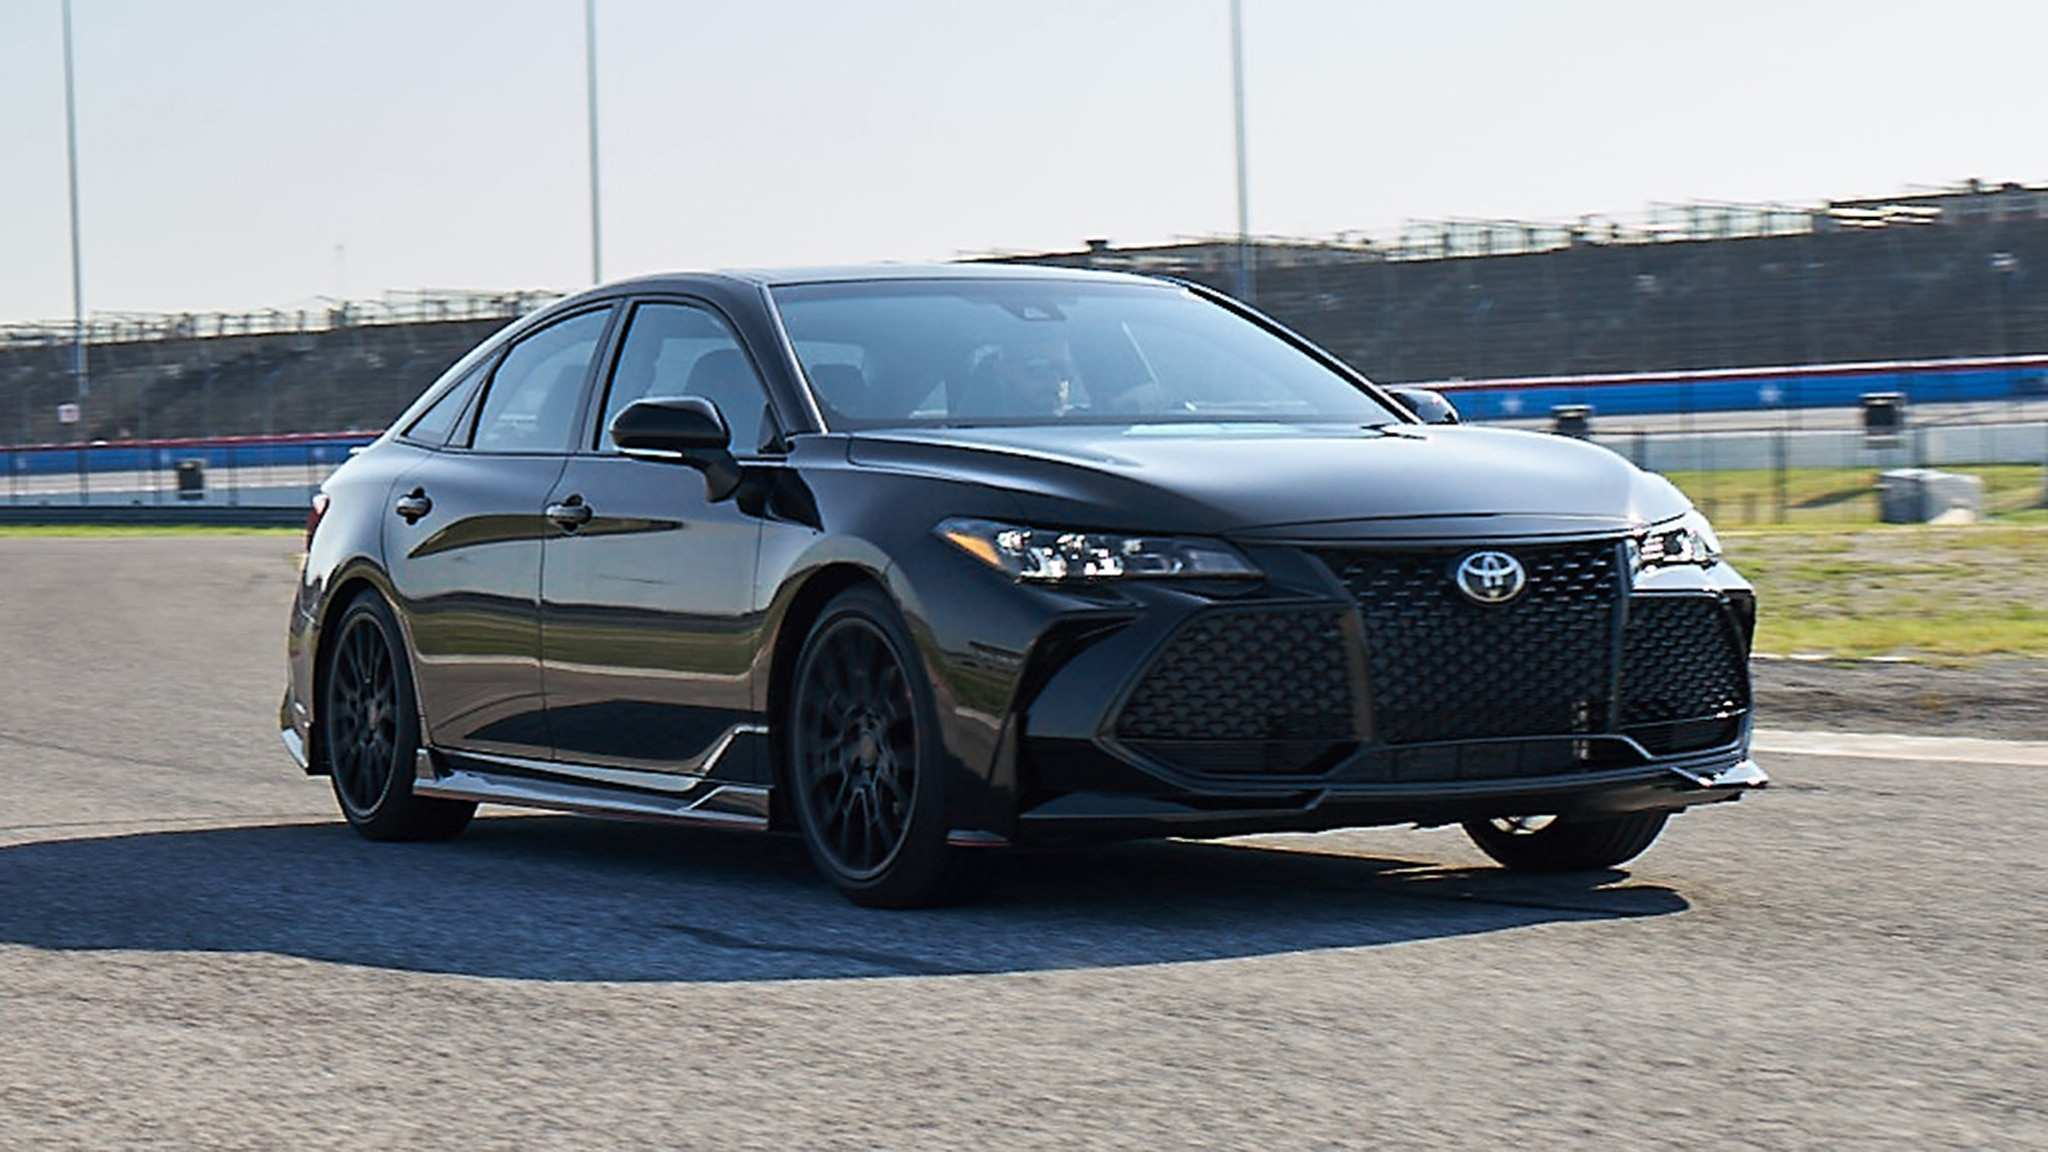 82 All New 2020 Toyota Avalon Price